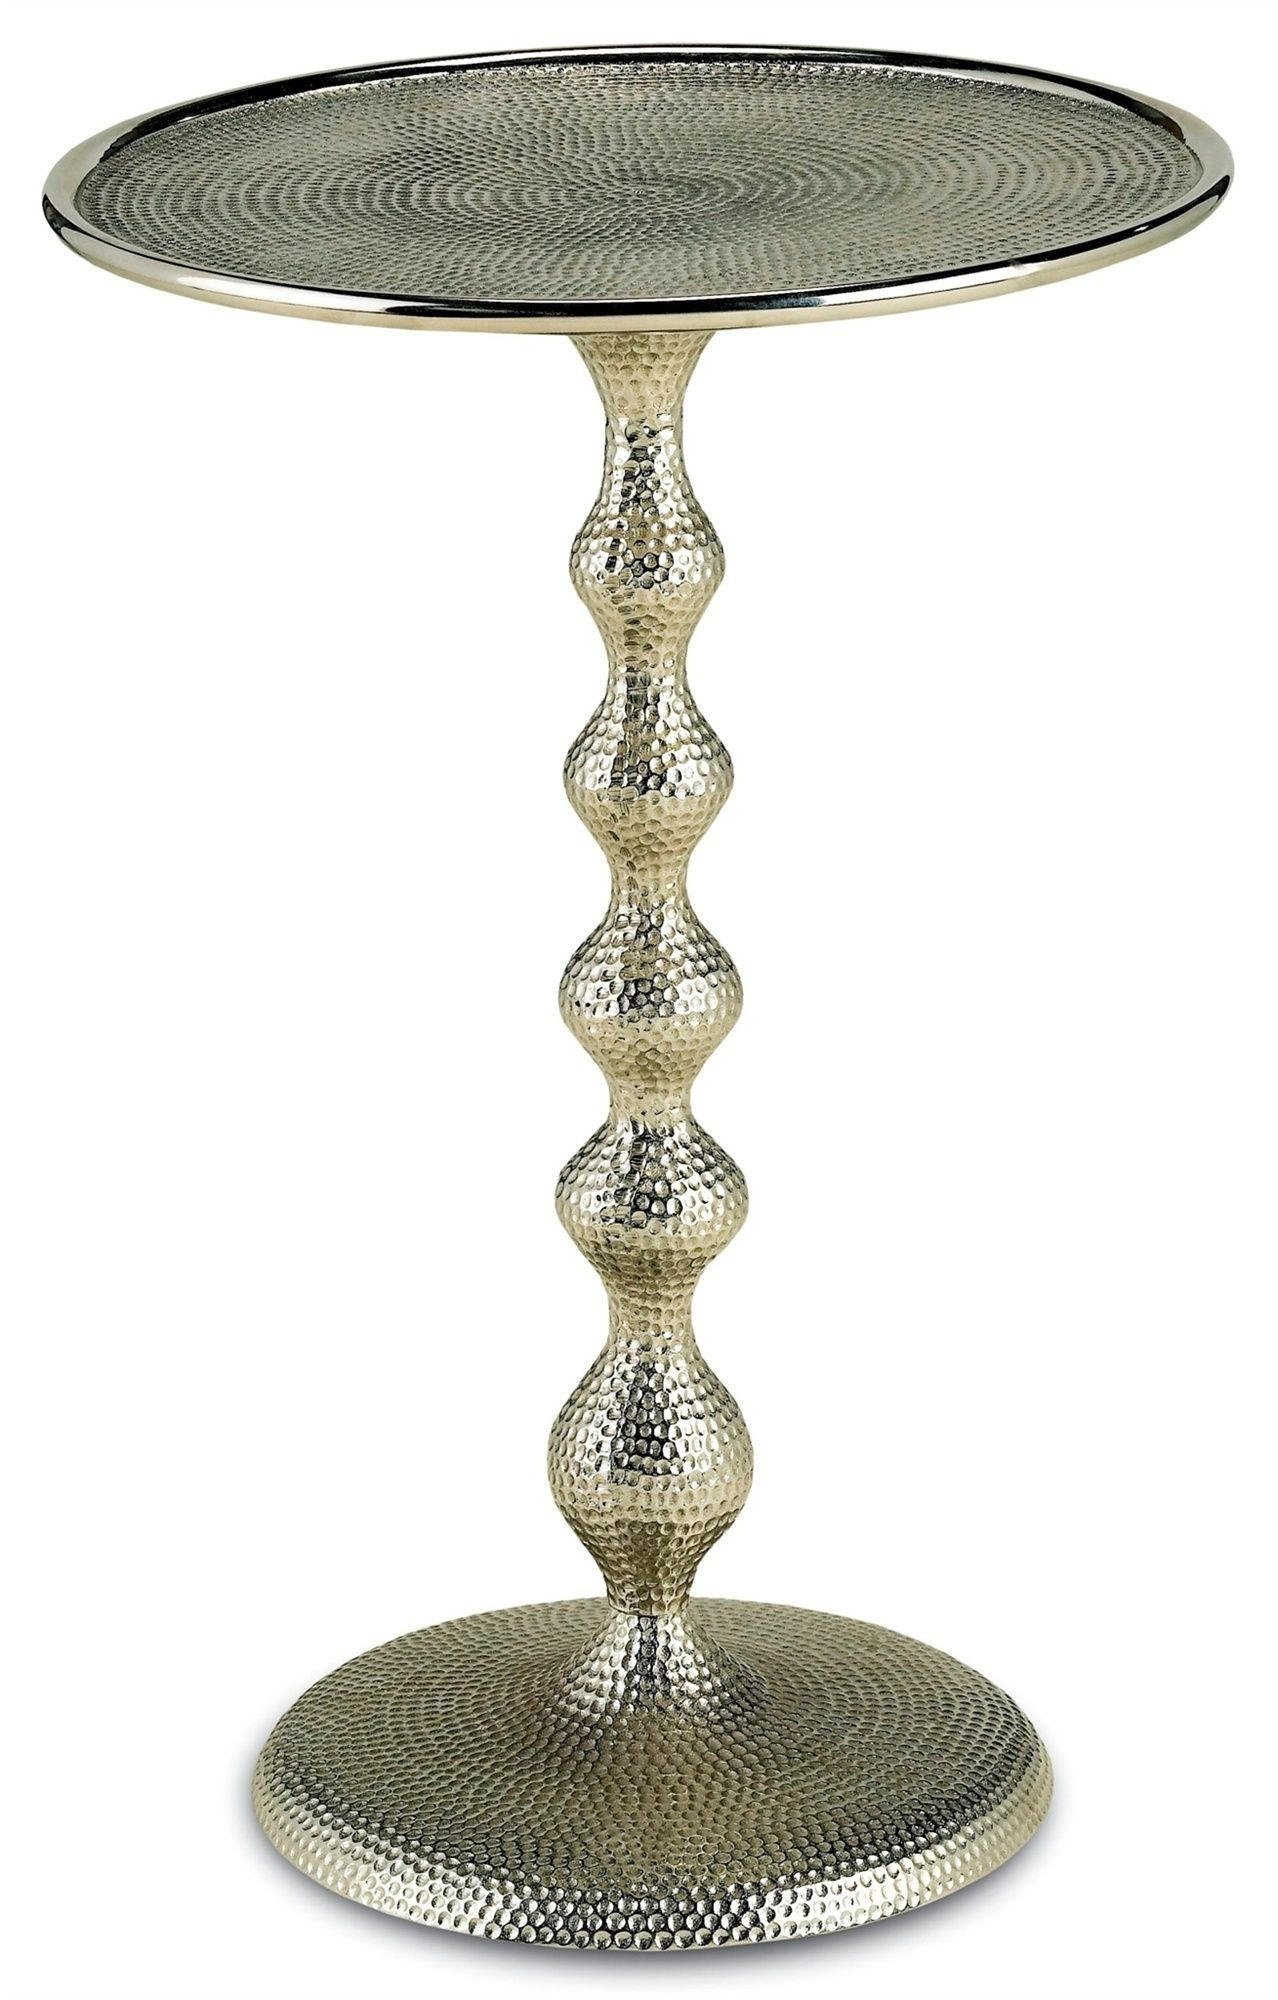 hookah table accent table silver side table metal end on exclusive modern nesting end tables design ideas very functional furnishings id=80747